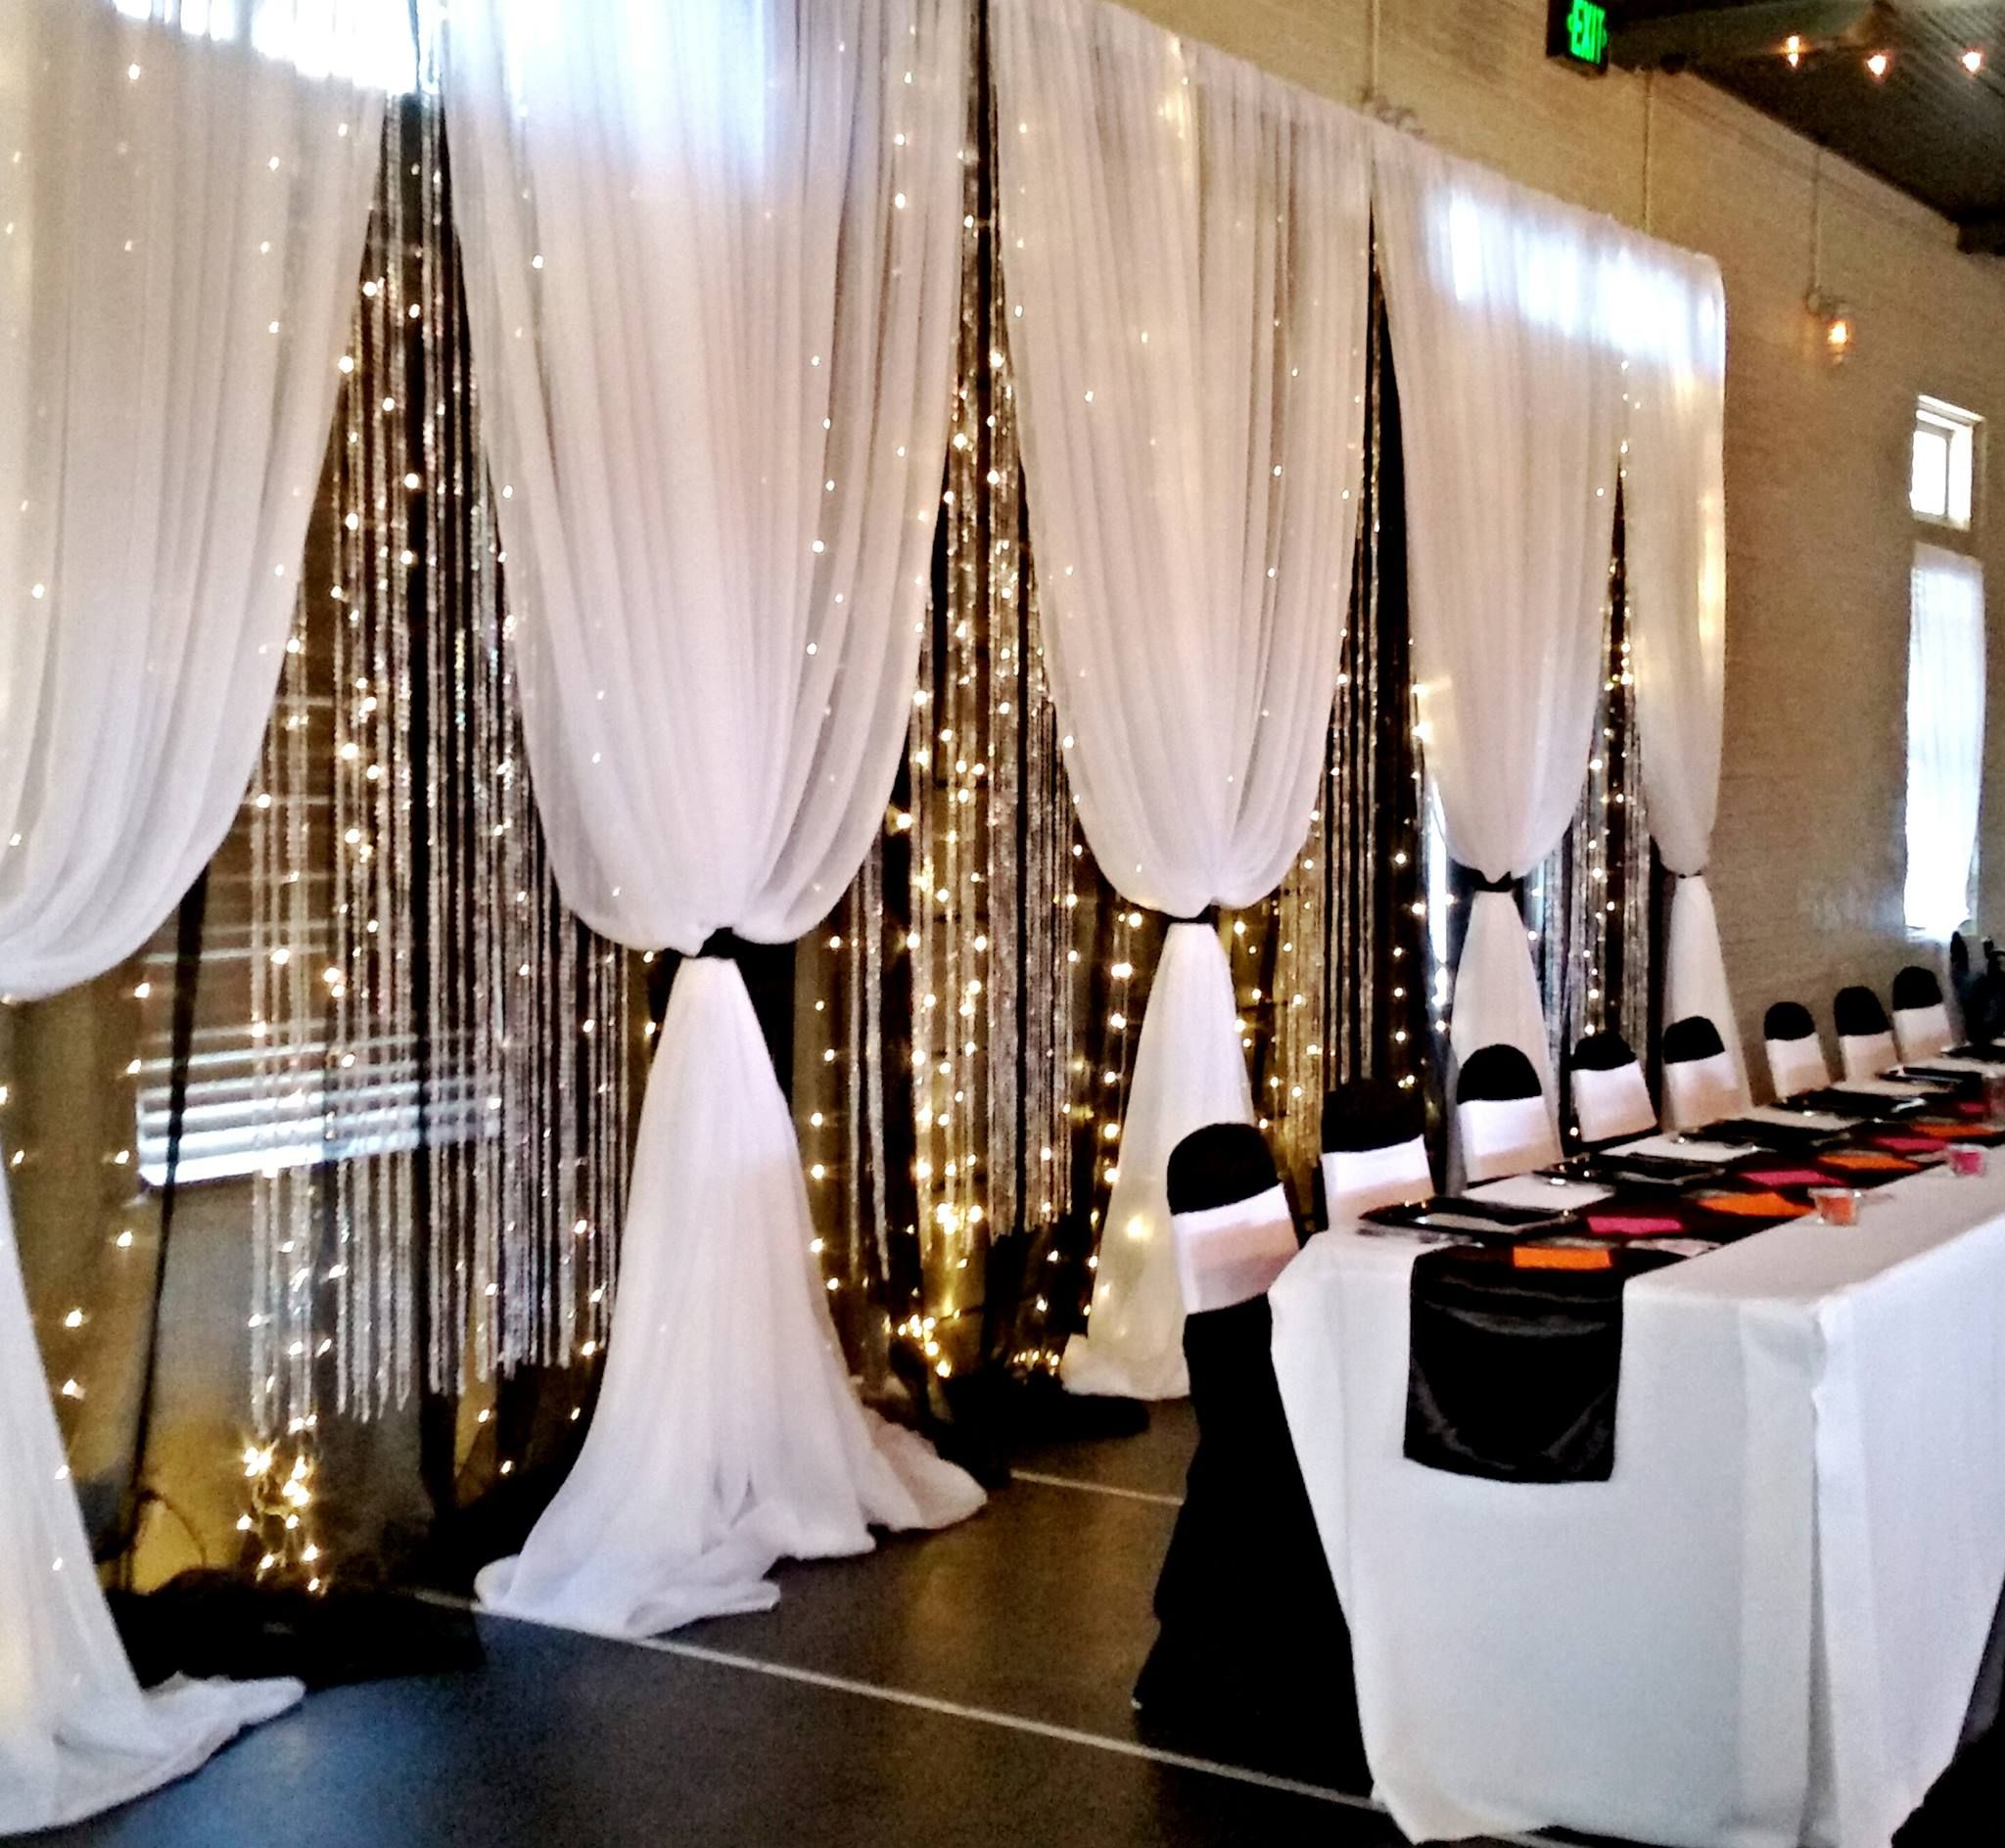 Diy Wall Draping For Weddings That Meet Interesting Decors: Pin By Andrea Sandoval On Weddings